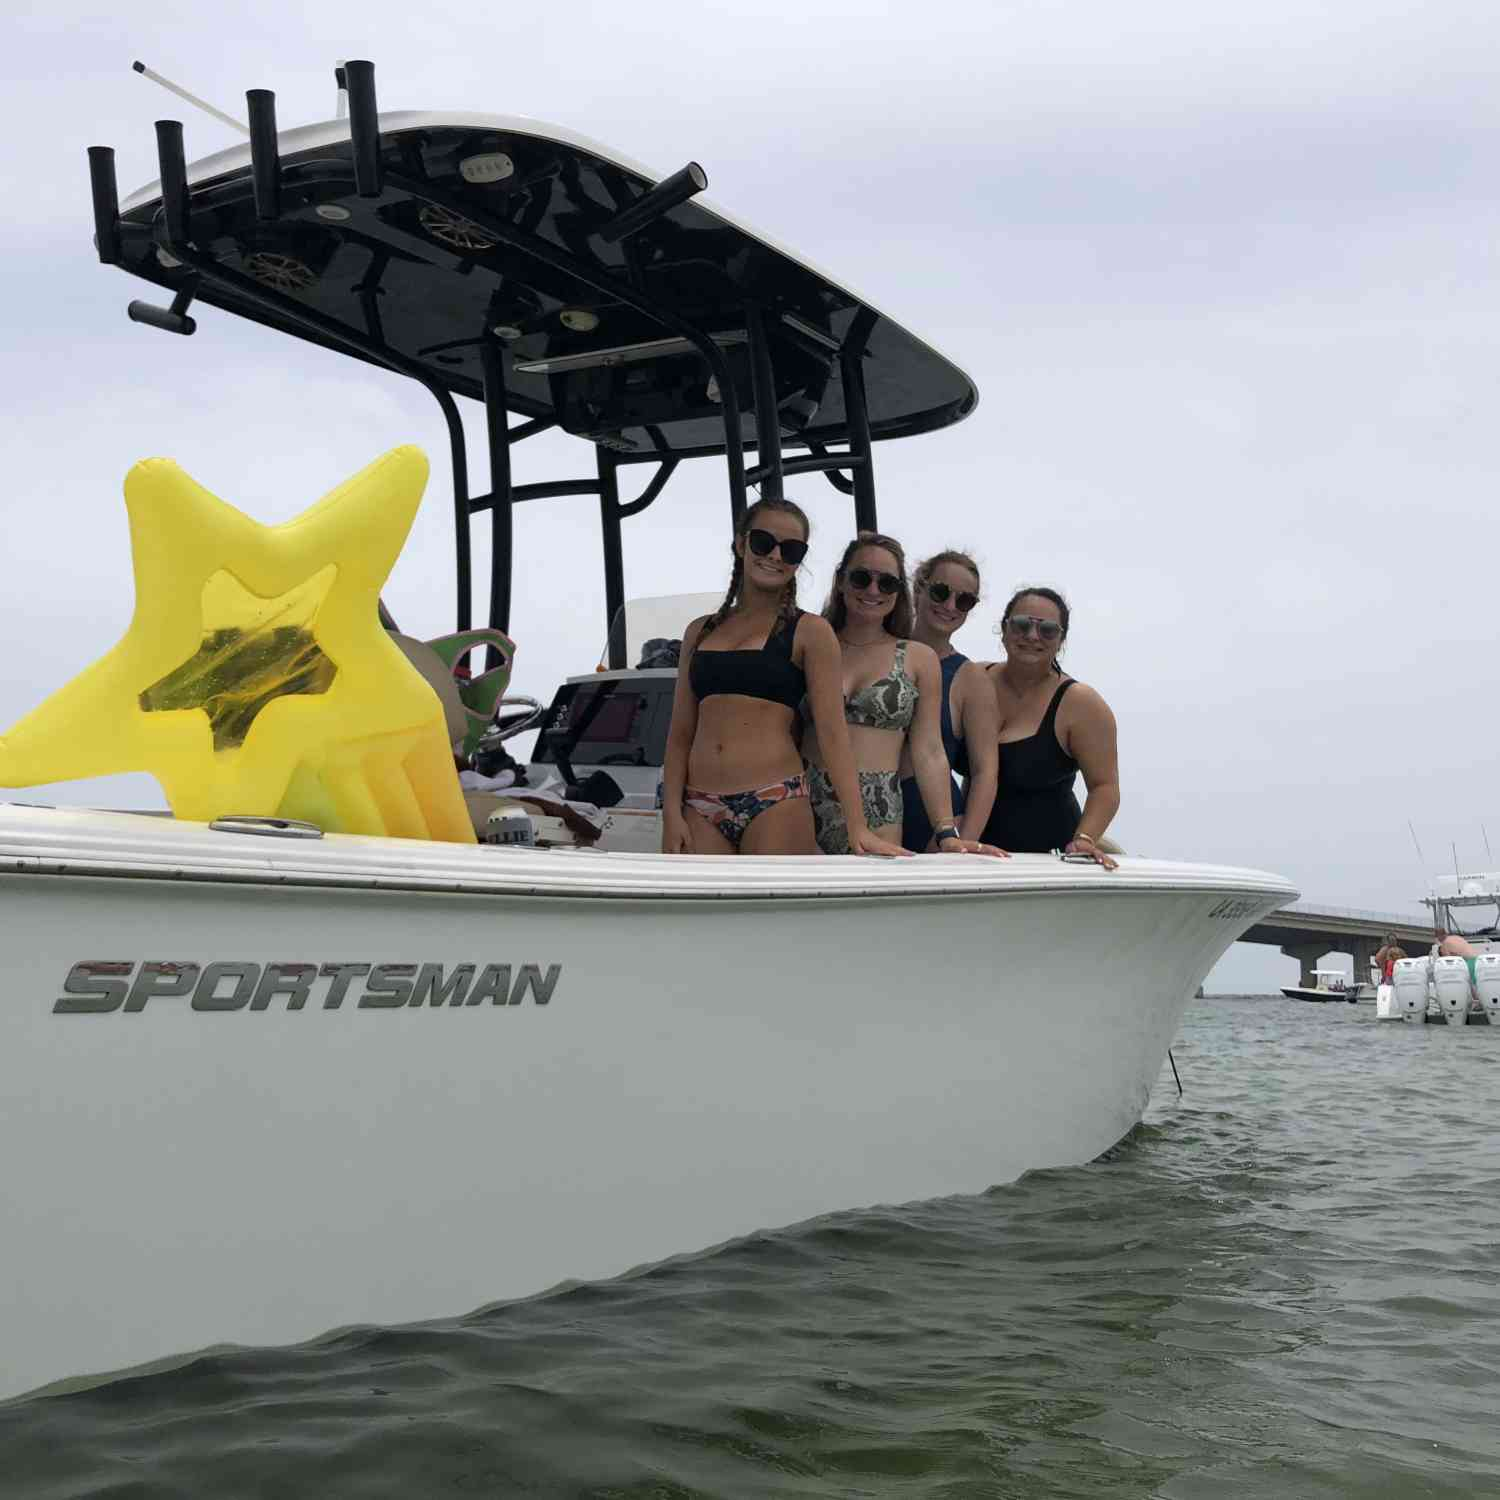 Title: Summer Fun - On board their Sportsman Open 232 Center Console - Location: Orange Beach, Al. Participating in the Photo Contest #SportsmanJuly2019